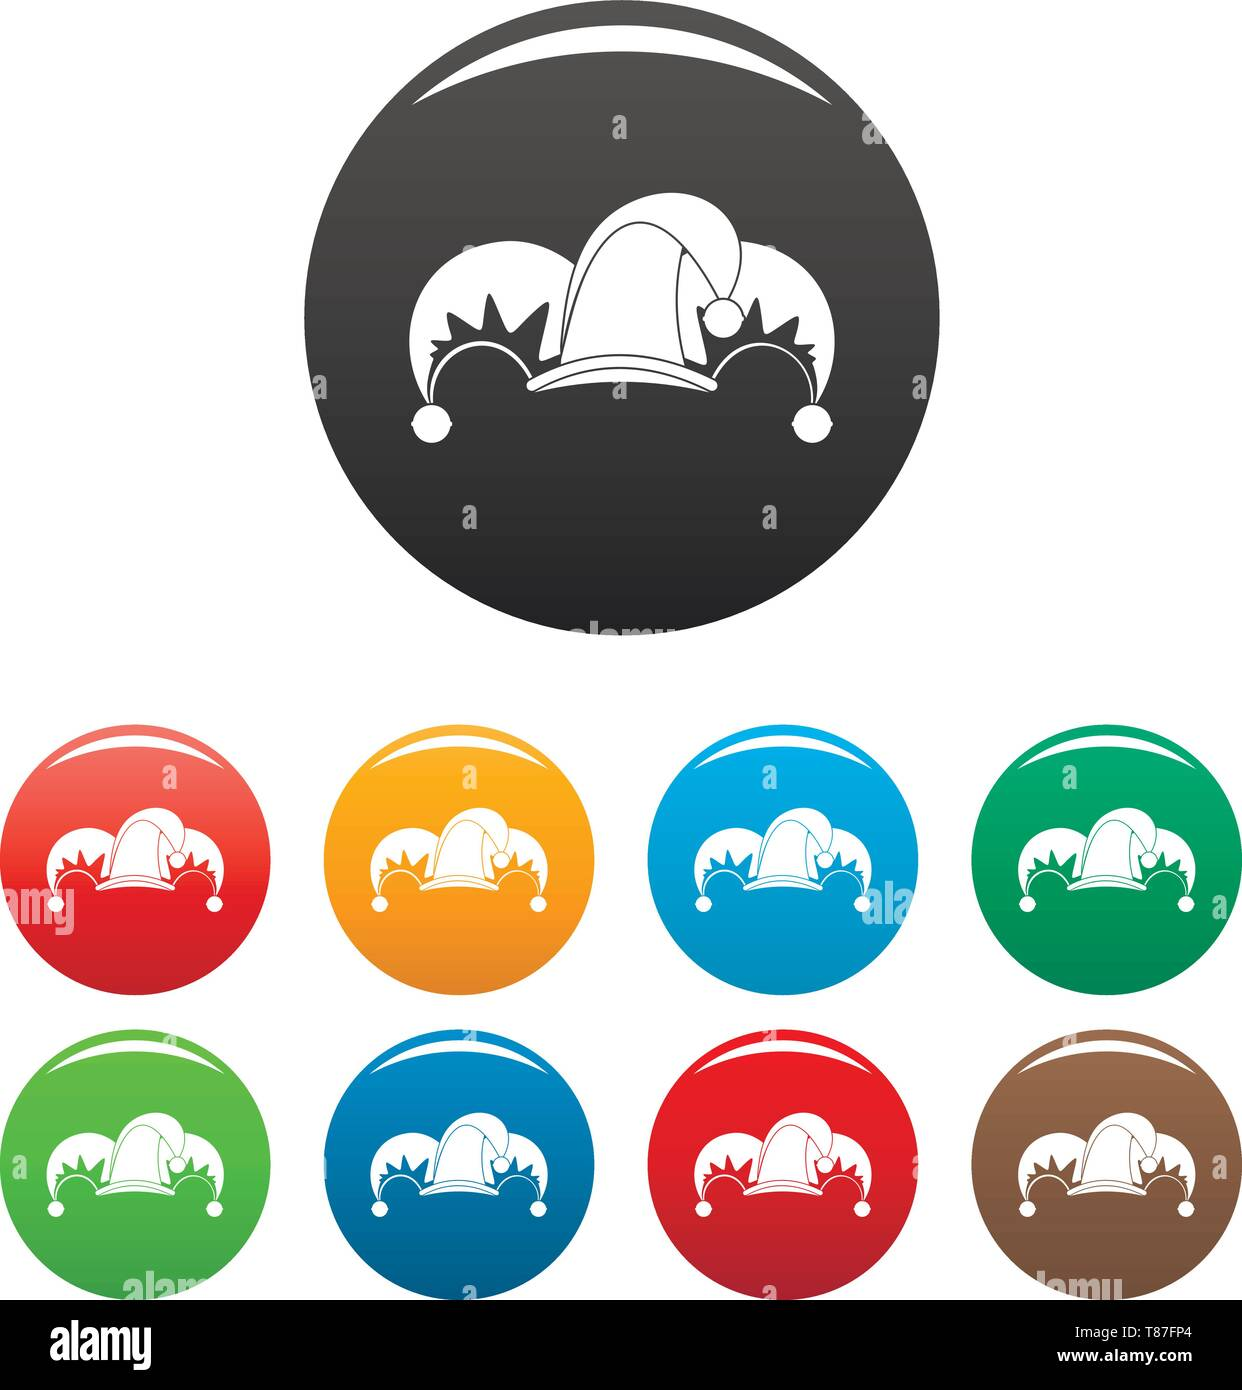 Clown job jester icons set 9 color vector isolated on white for any design - Stock Image